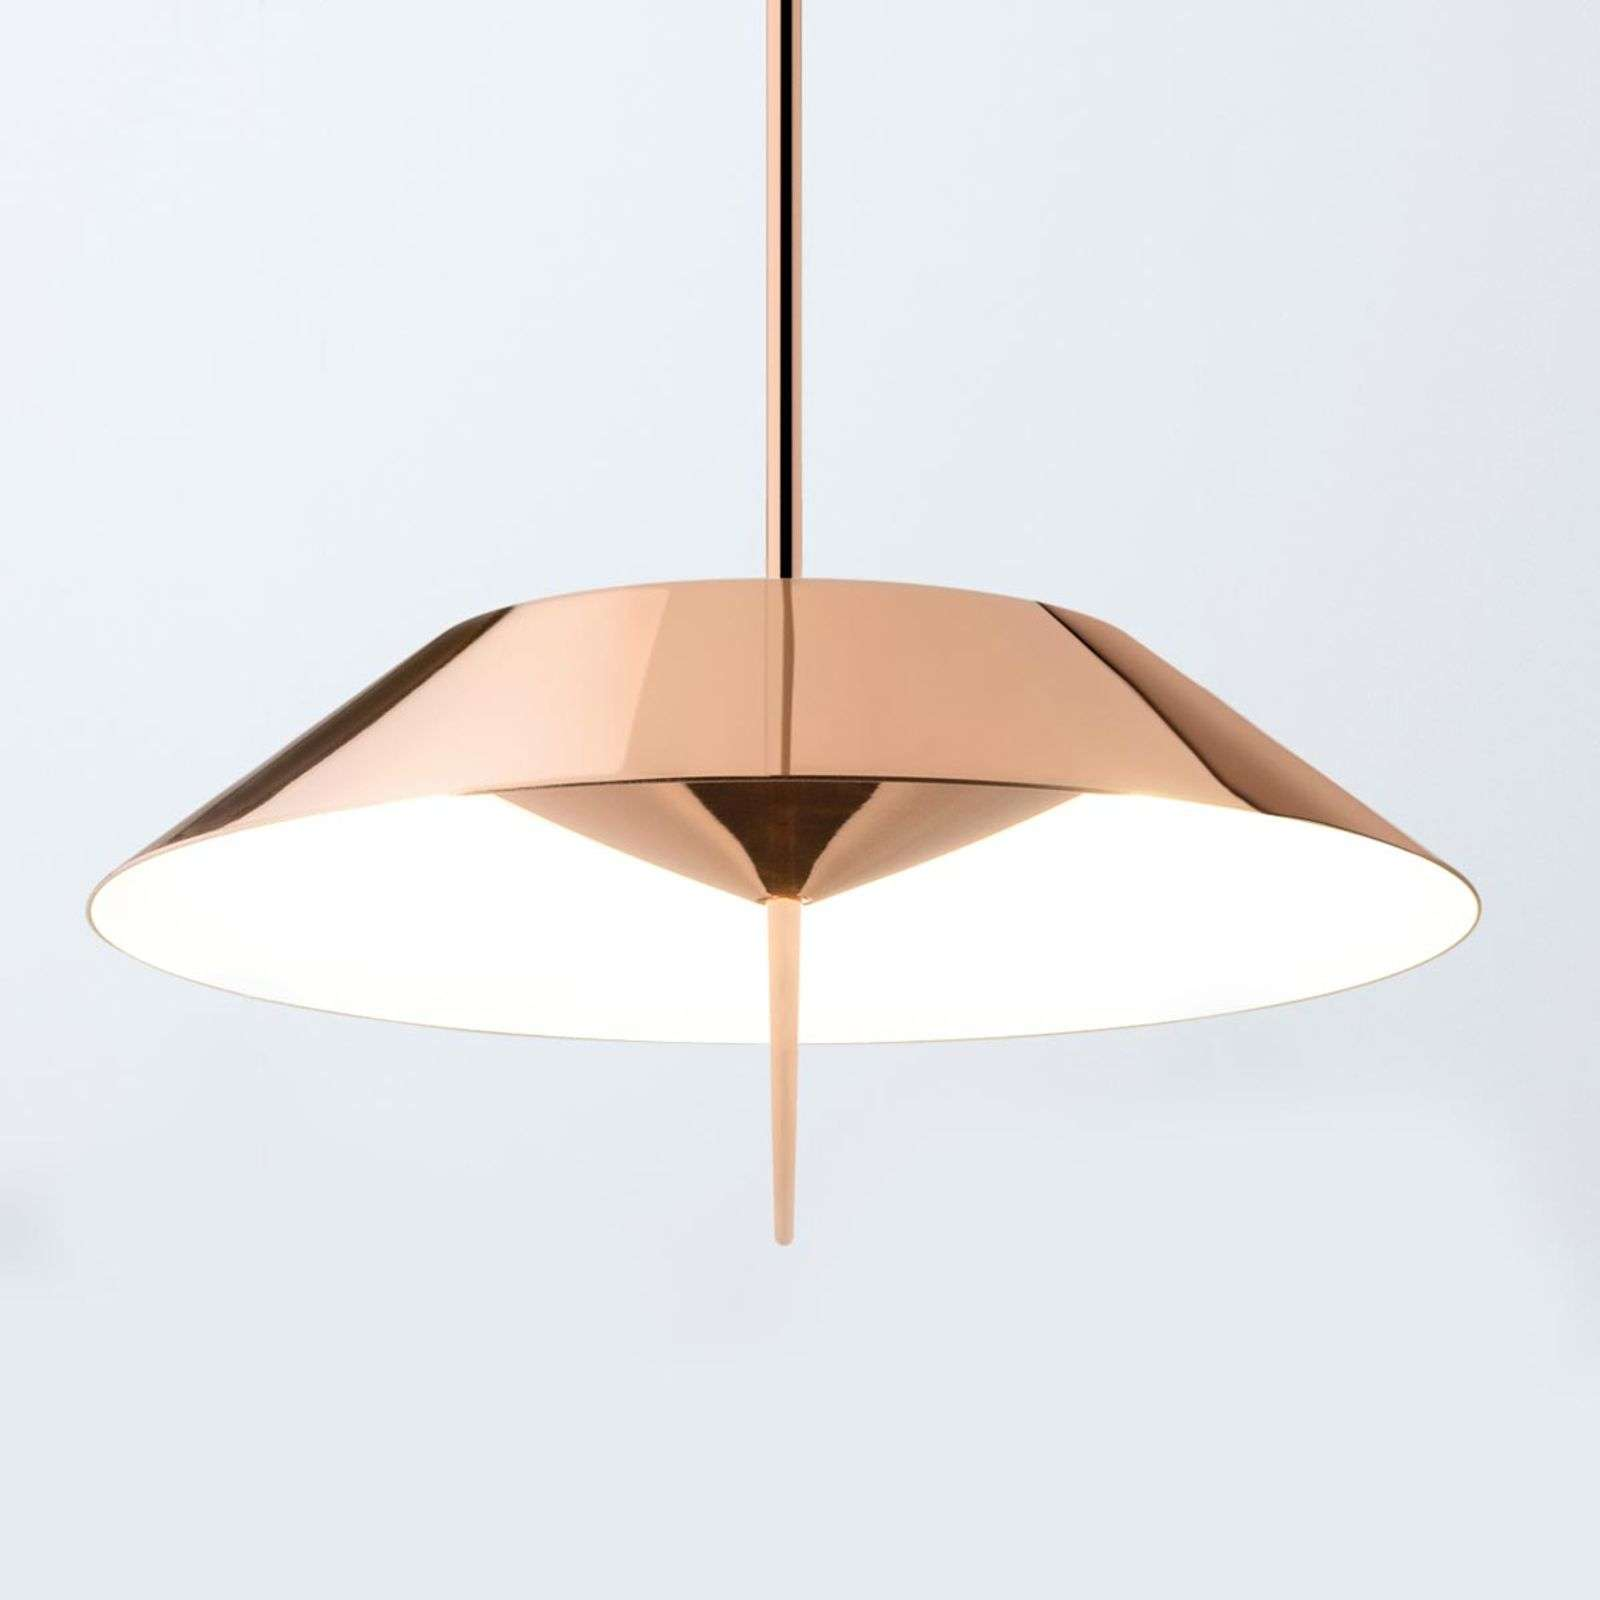 Magnifique suspension LED Mayfair